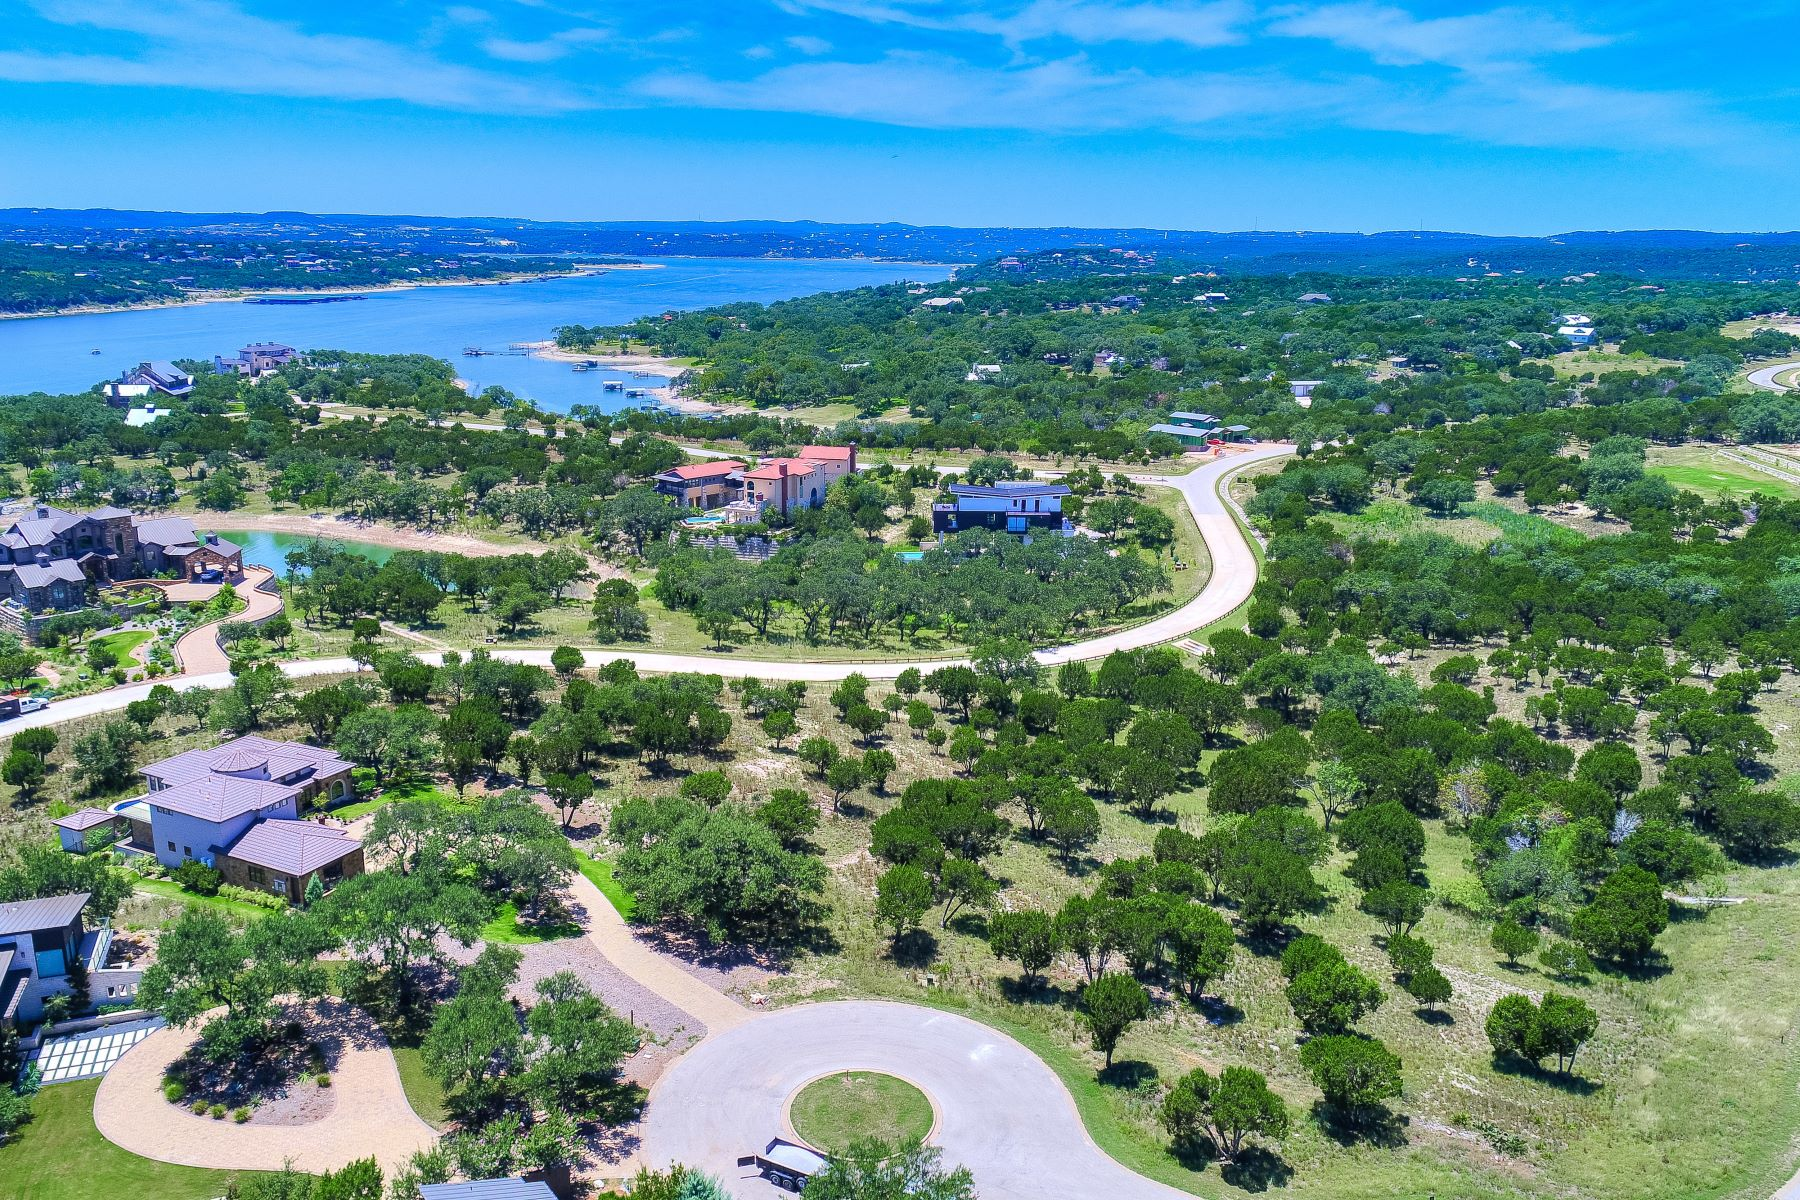 Single Family Home for Sale at Live the Waterfront Lifestyle 19204 Secretariat Place, Spicewood, Texas, 78669 United States